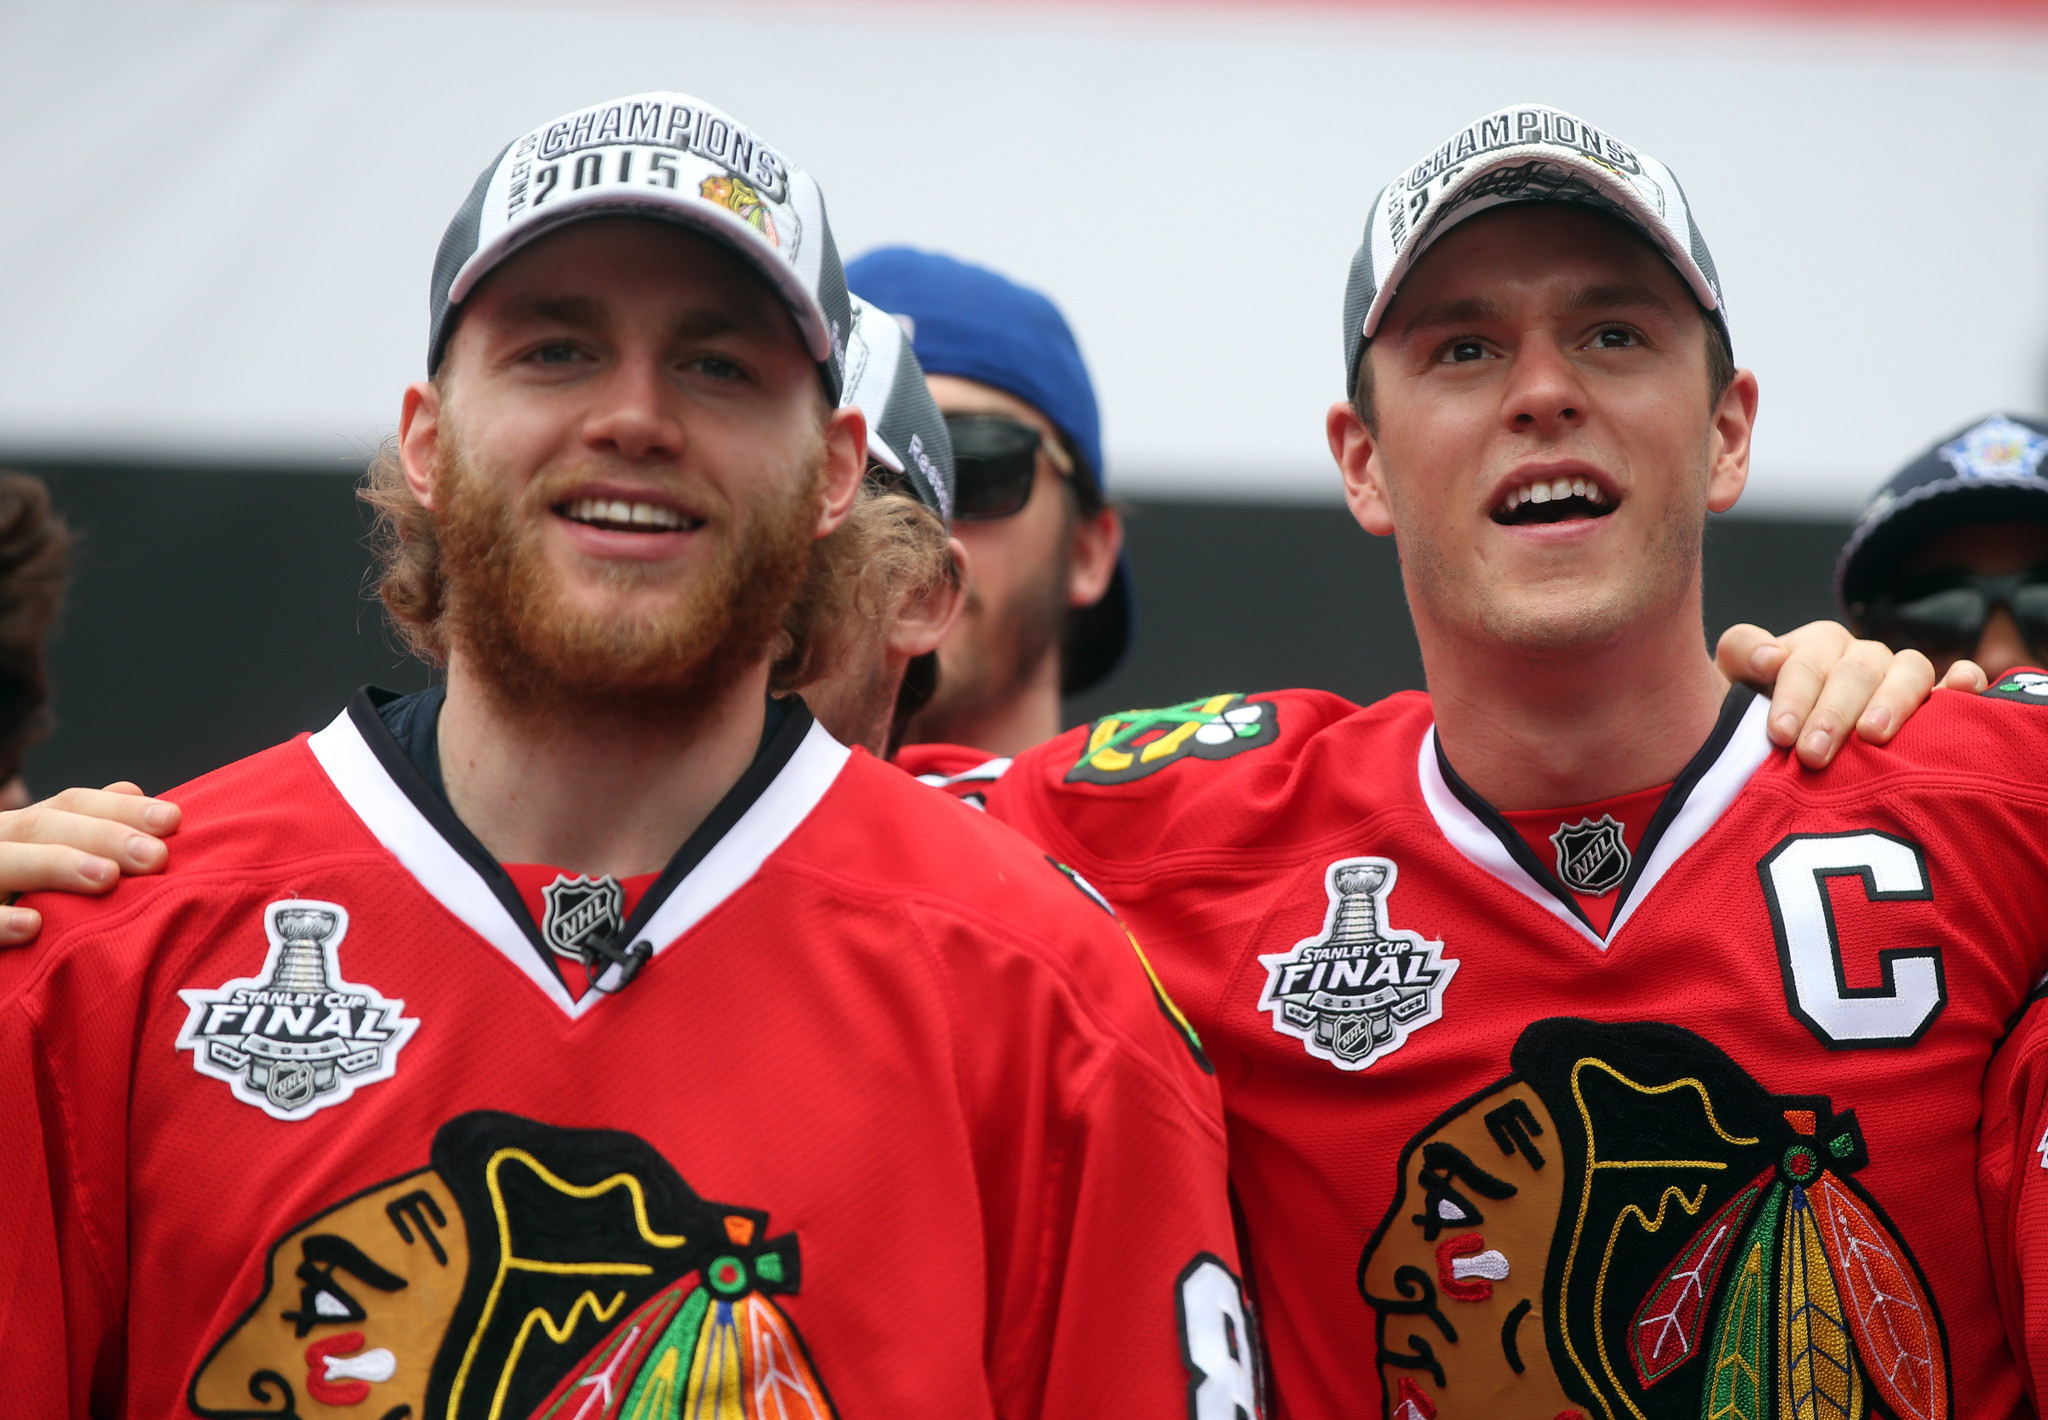 Redeye-patrick-kane-finally-followed-jonathan-toews-on-twitter-and-all-is-right-with-the-world-20160504